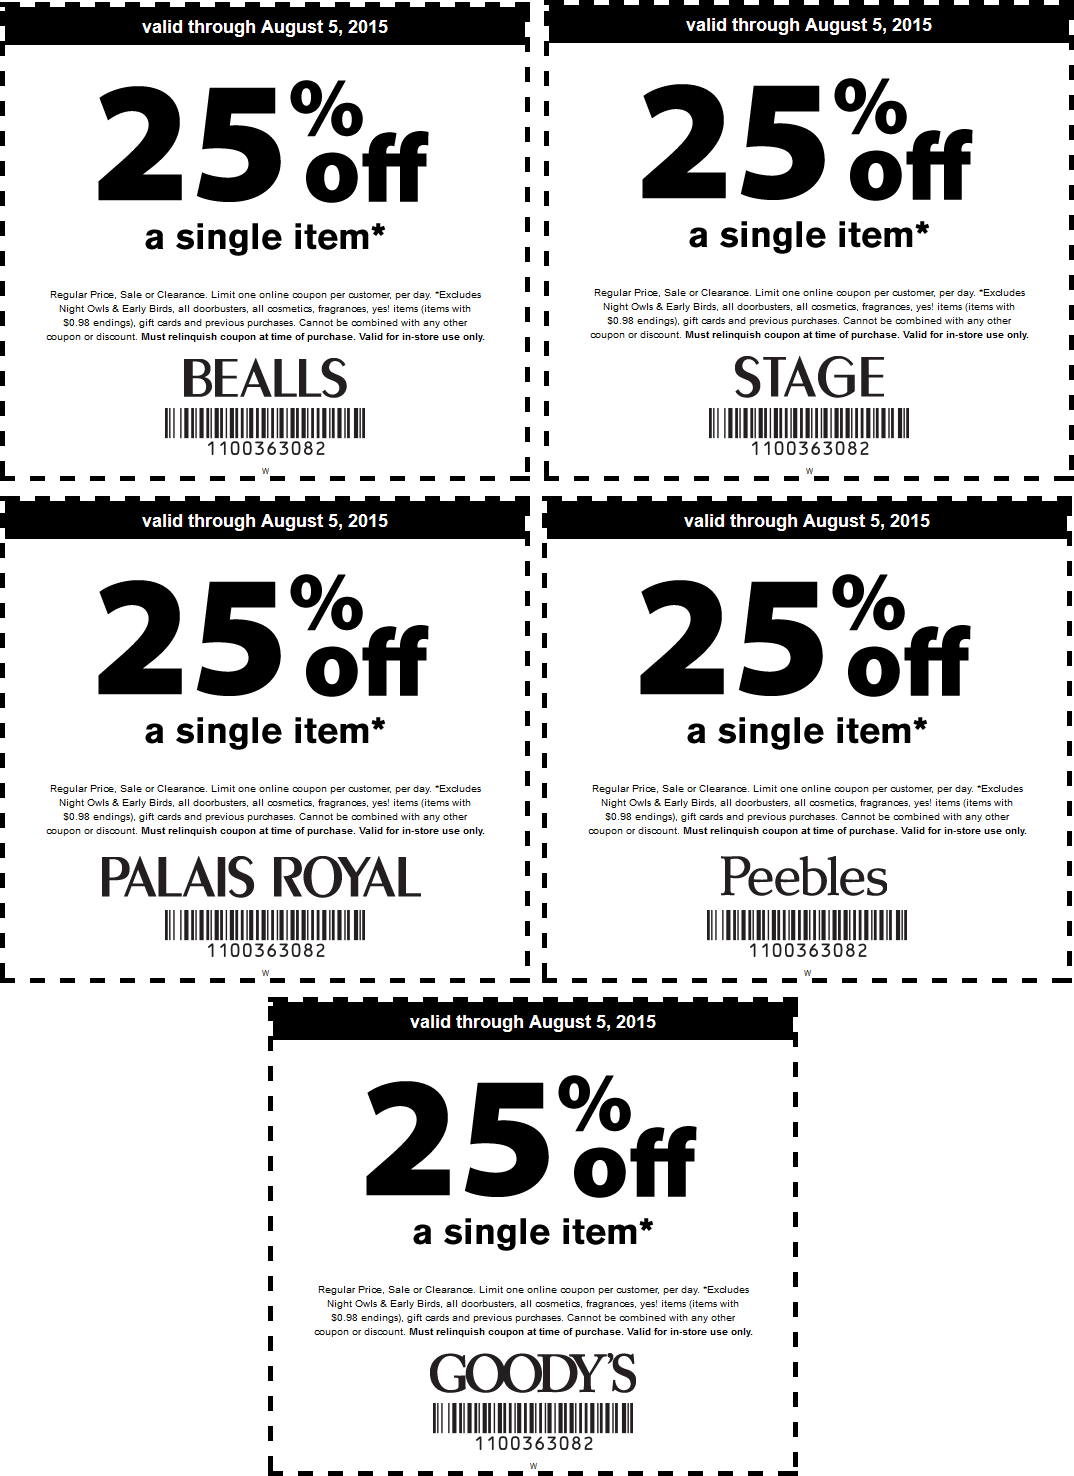 Bealls Coupon December 2017 25% off a single item at Goodys, Peebles, Palais Royal, Bealls & Stage Stores